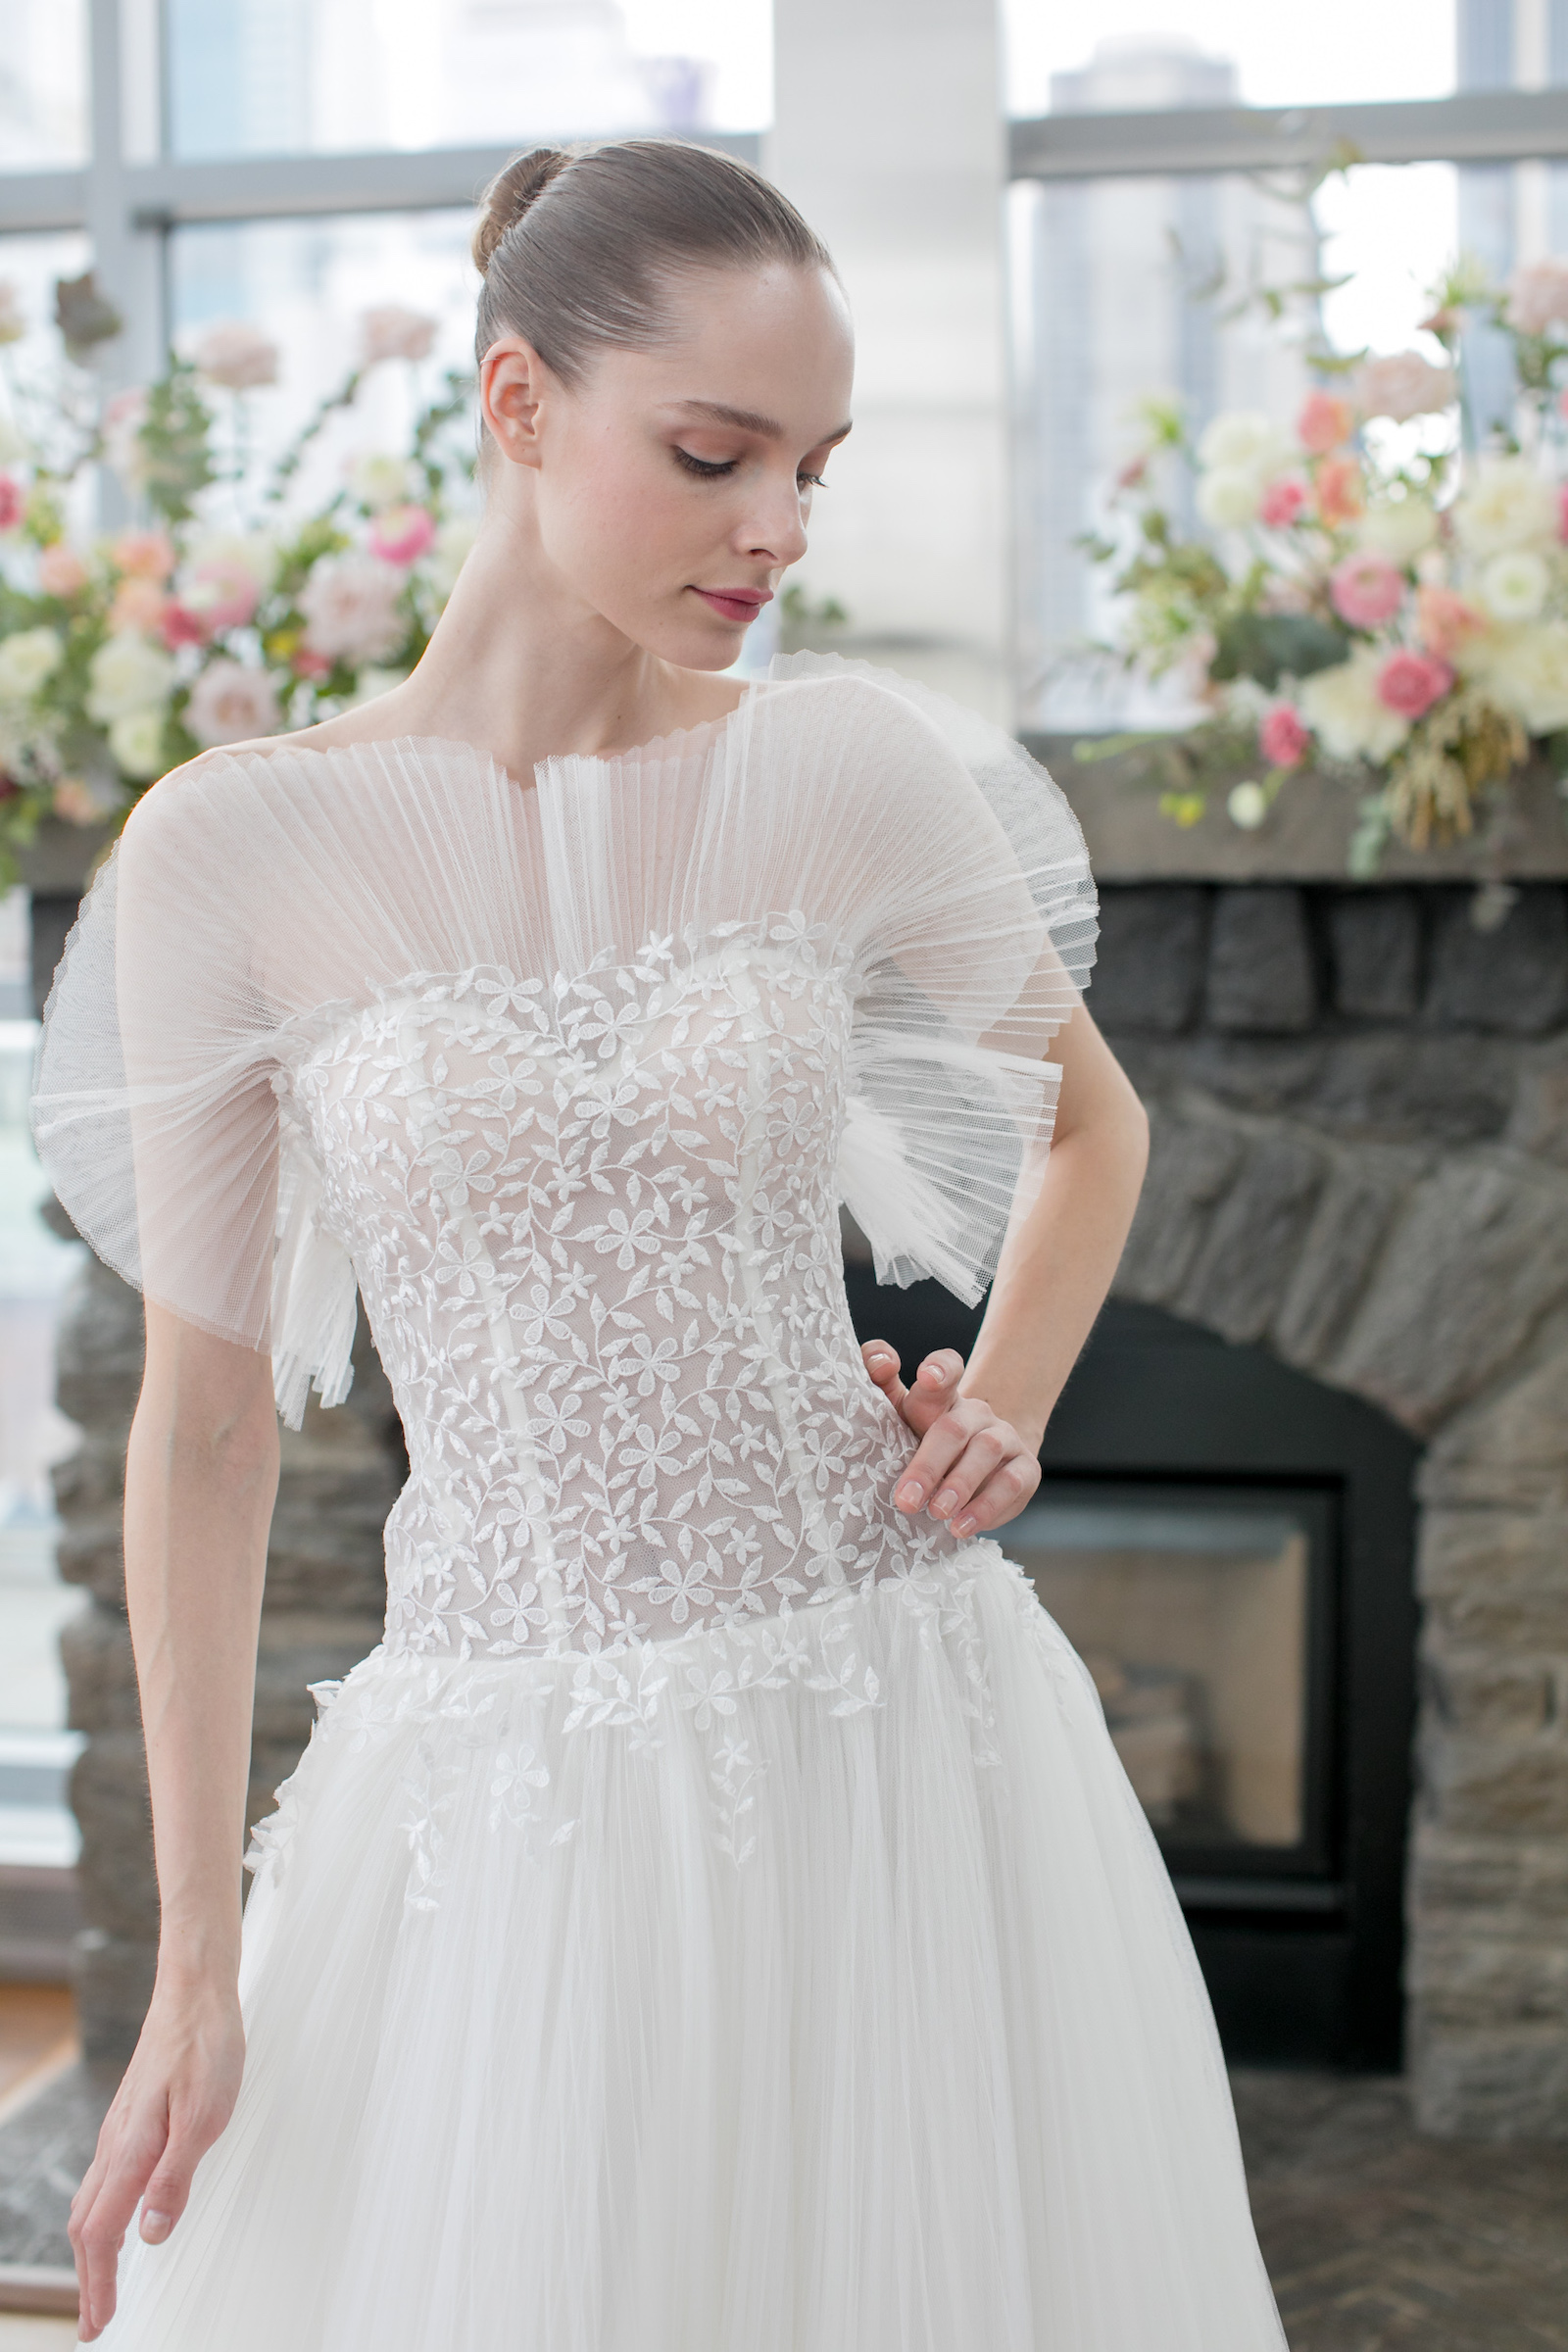 Spring 2020 Wedding Dress Trends Oversized Details Isabelle Armstrong